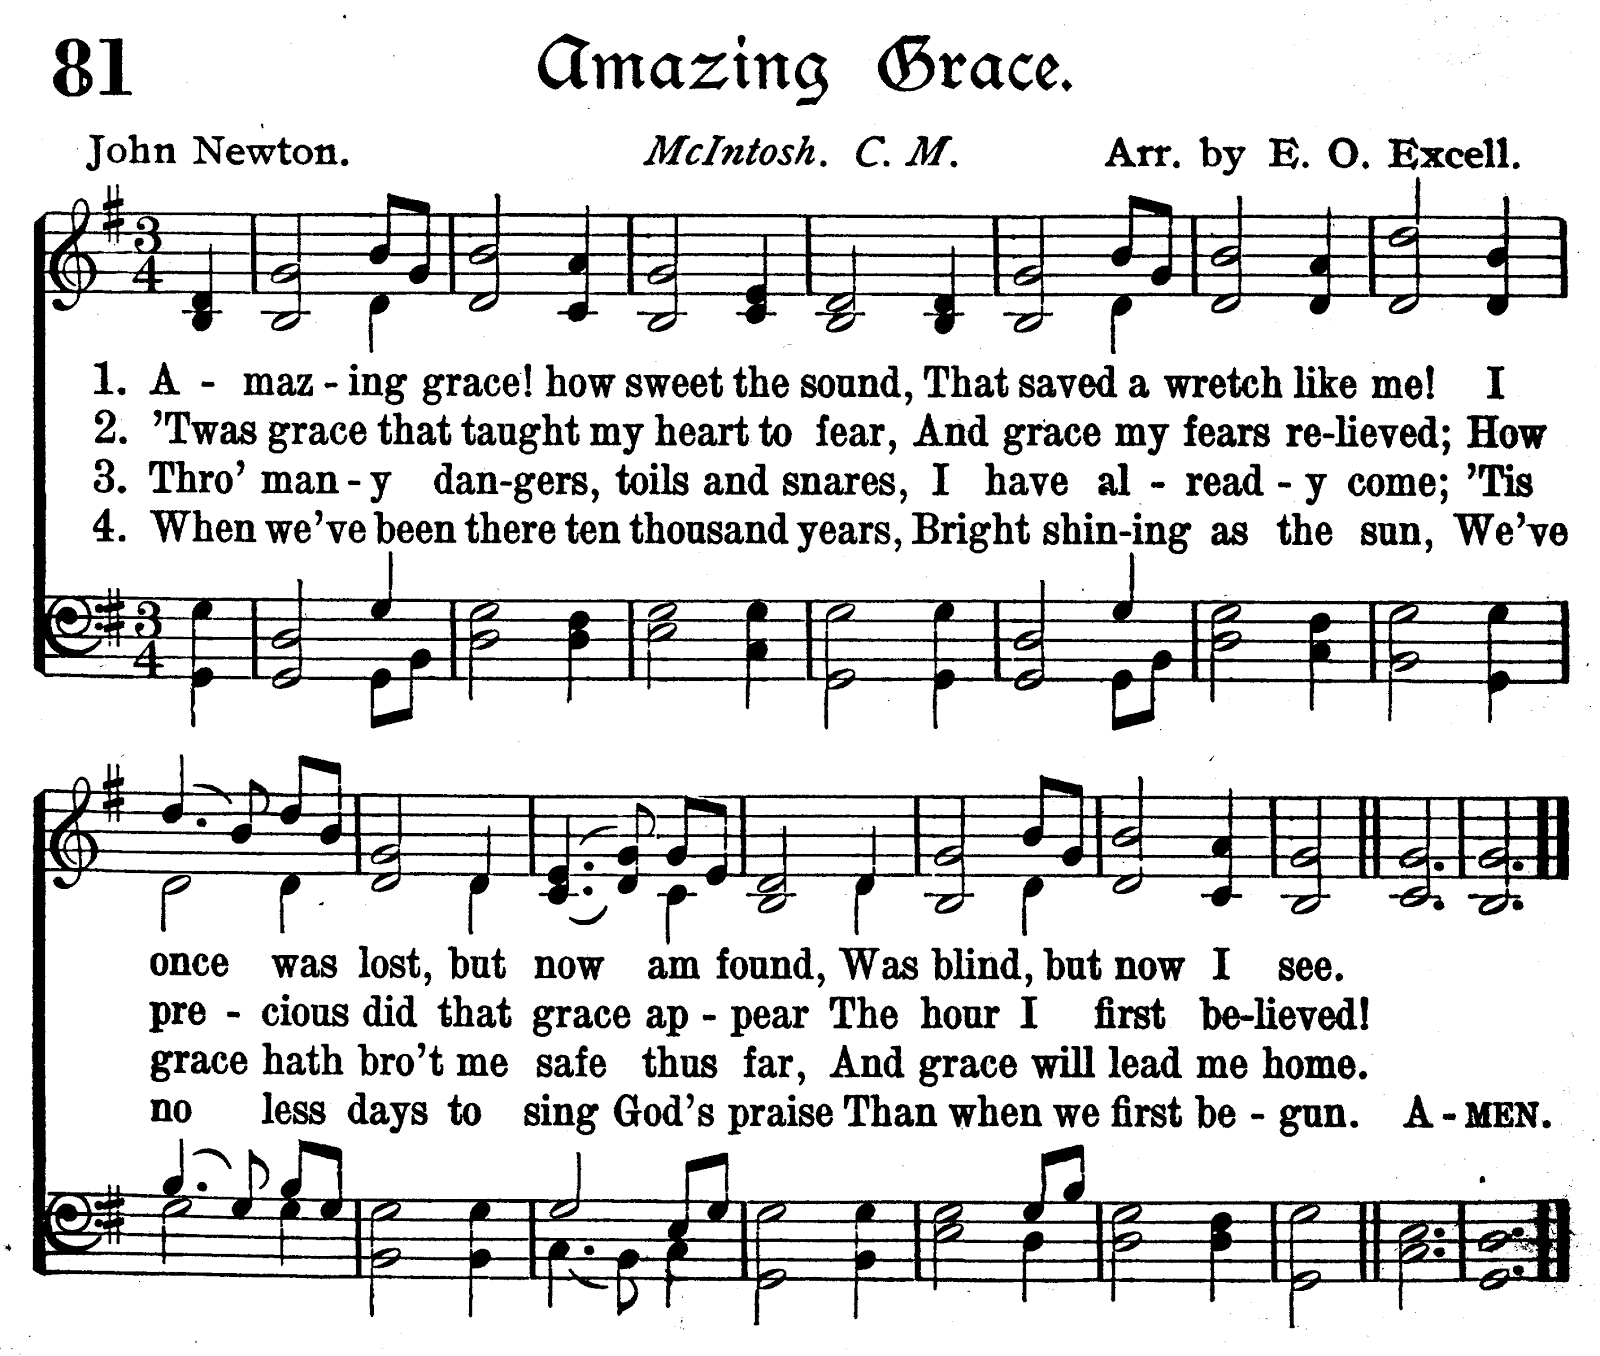 Amazing Grace: The Sage Book Whisperer: Series 4:Hymn-Lining ~Gaelic